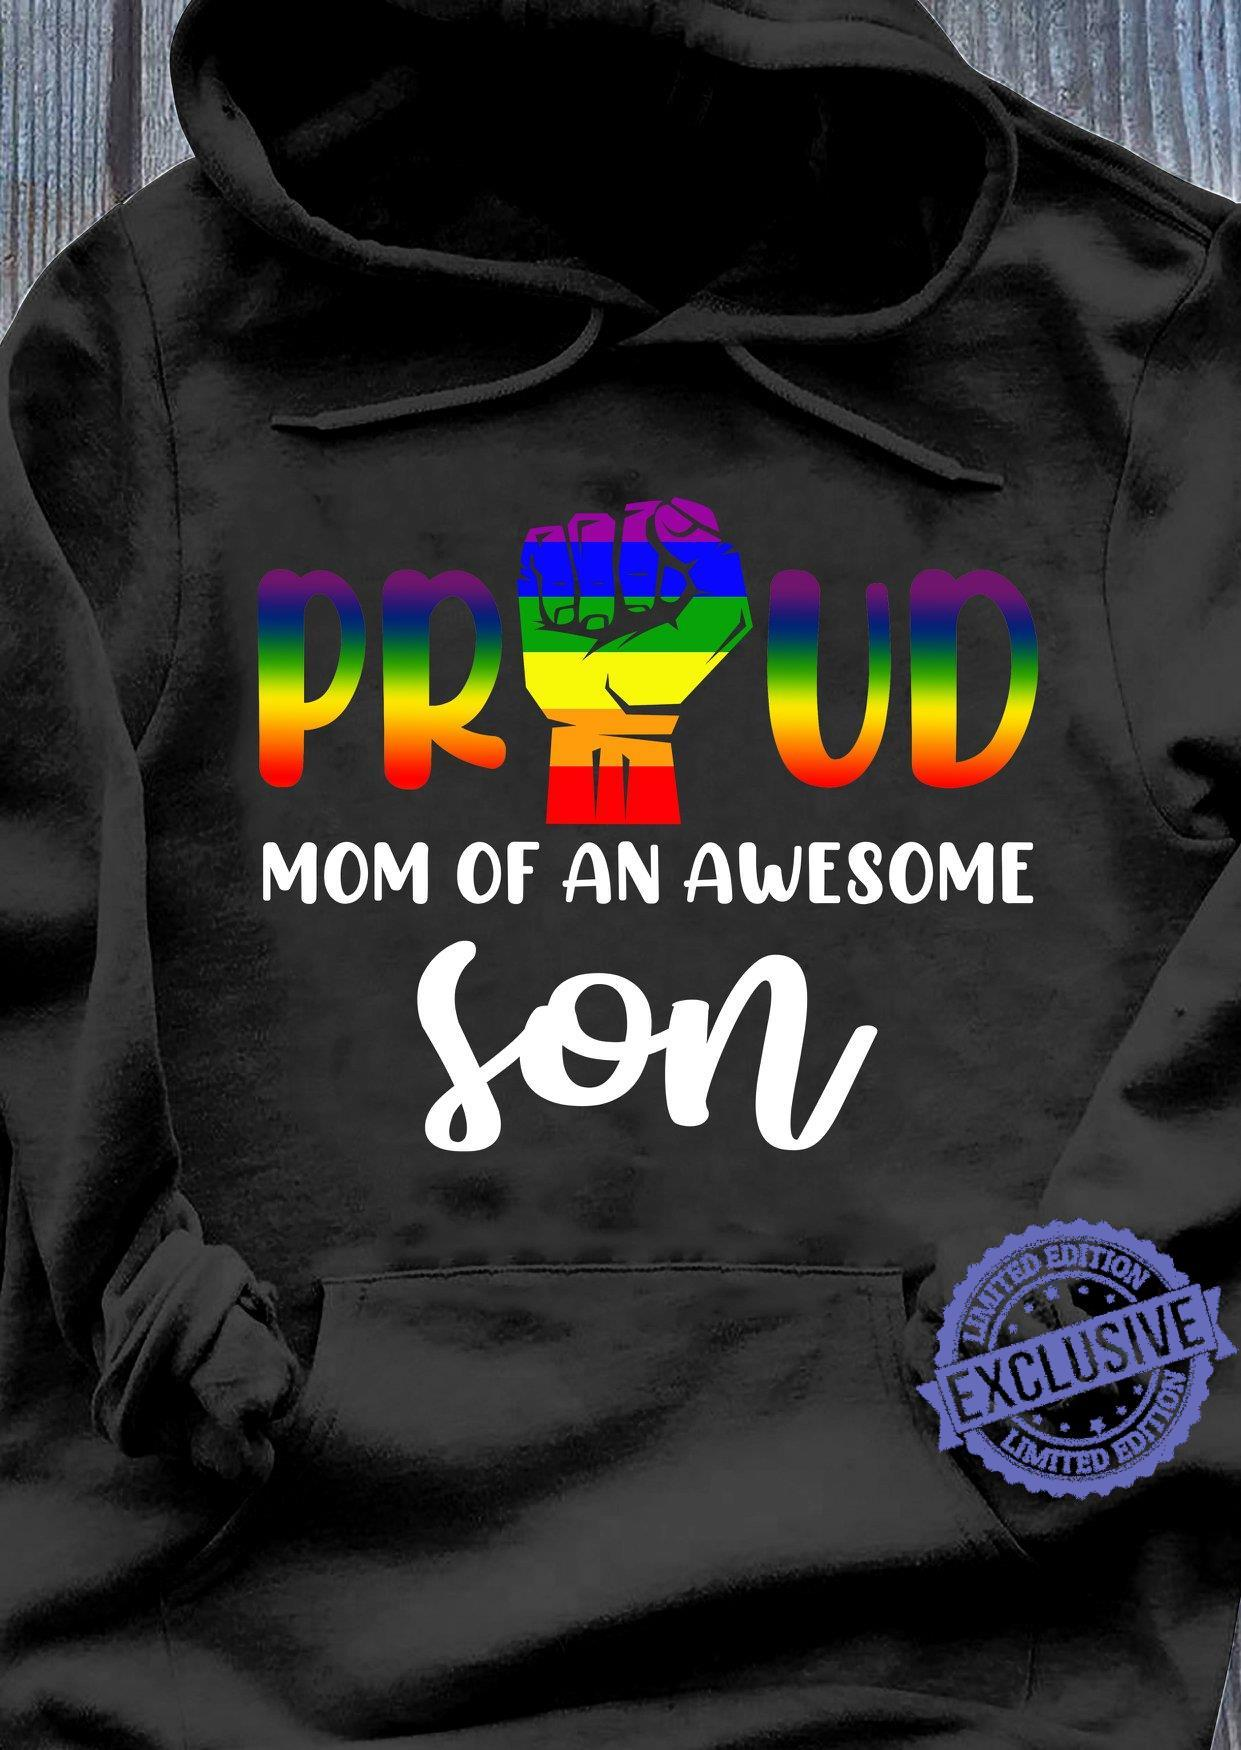 Proud mom of an awesome son shirt